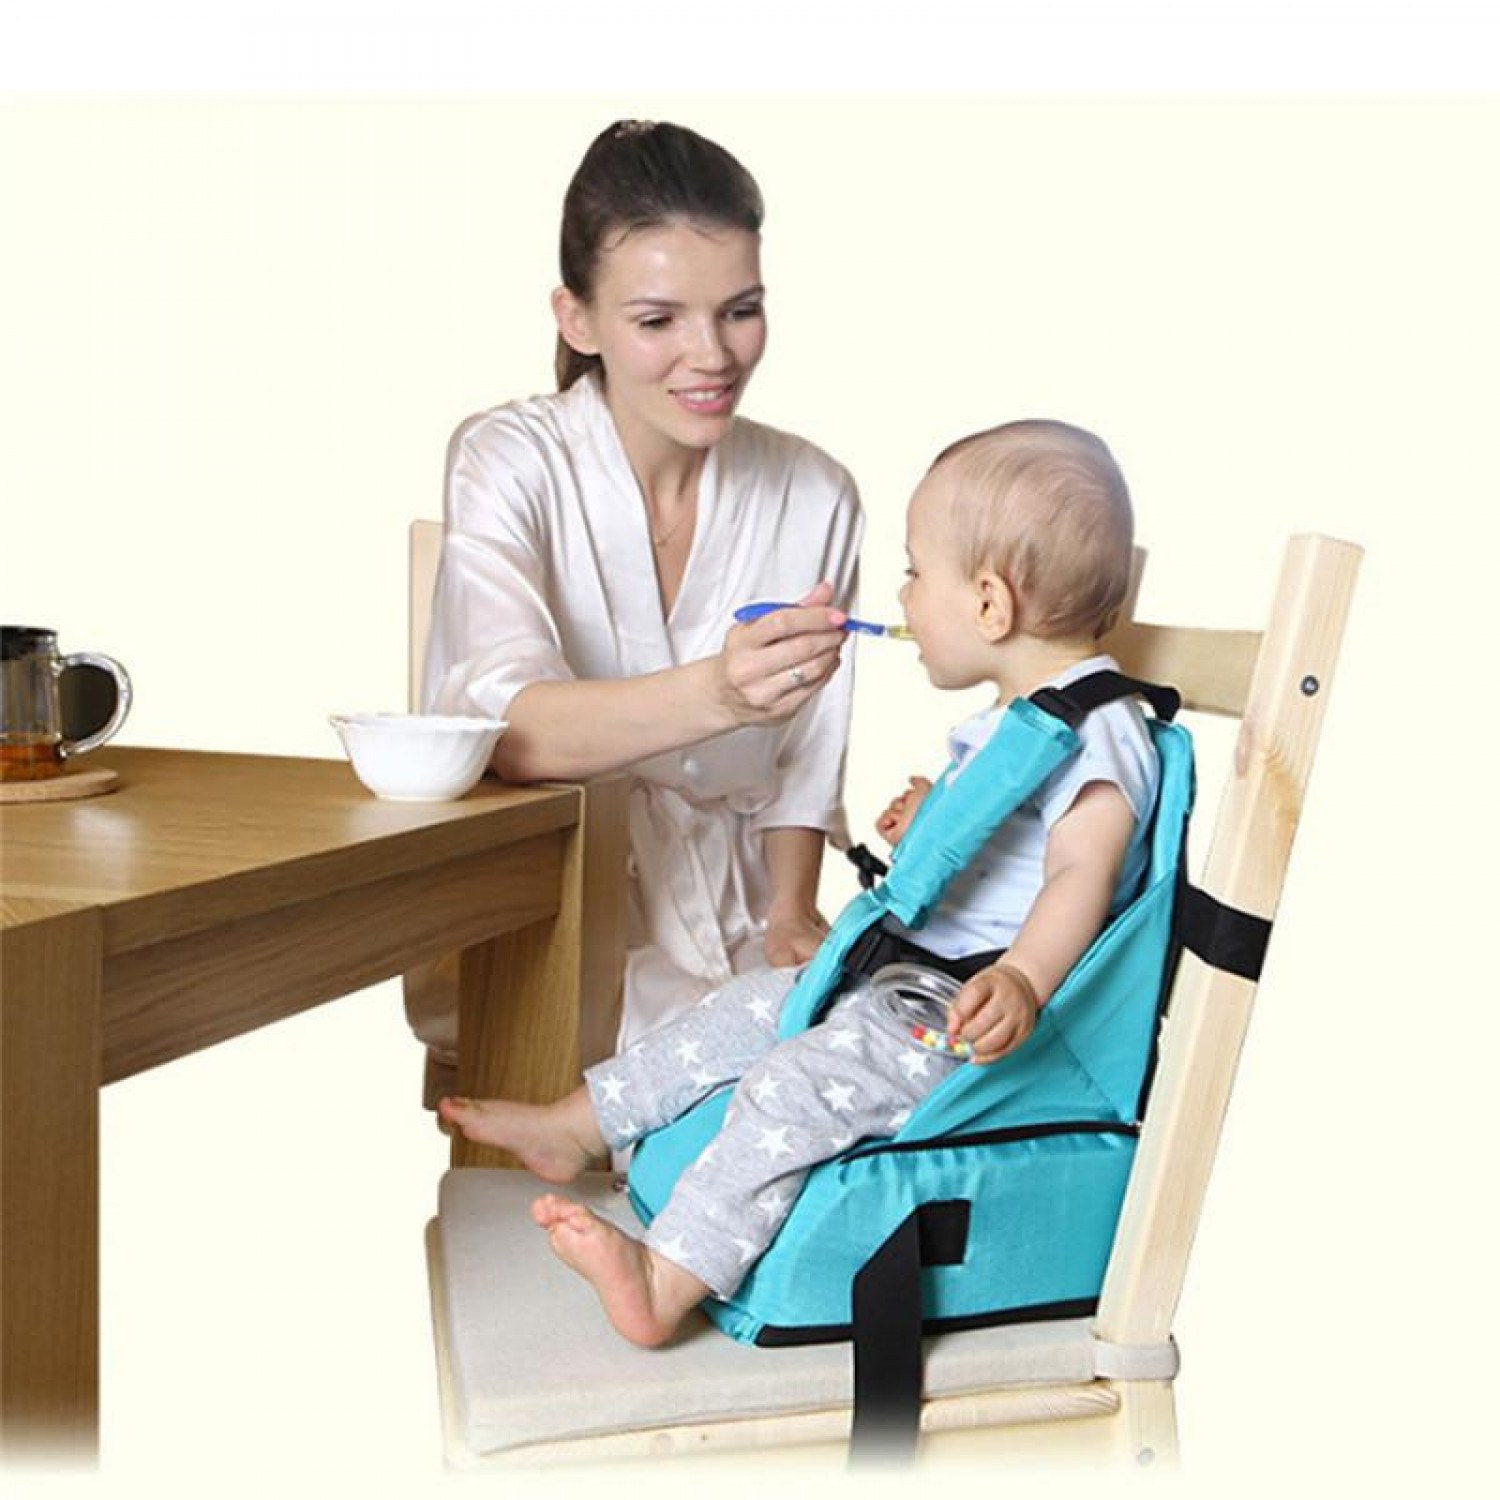 3 In 1 Waterproof Mommy Bag Portable Infant Seat   Best Choice Products Infographic